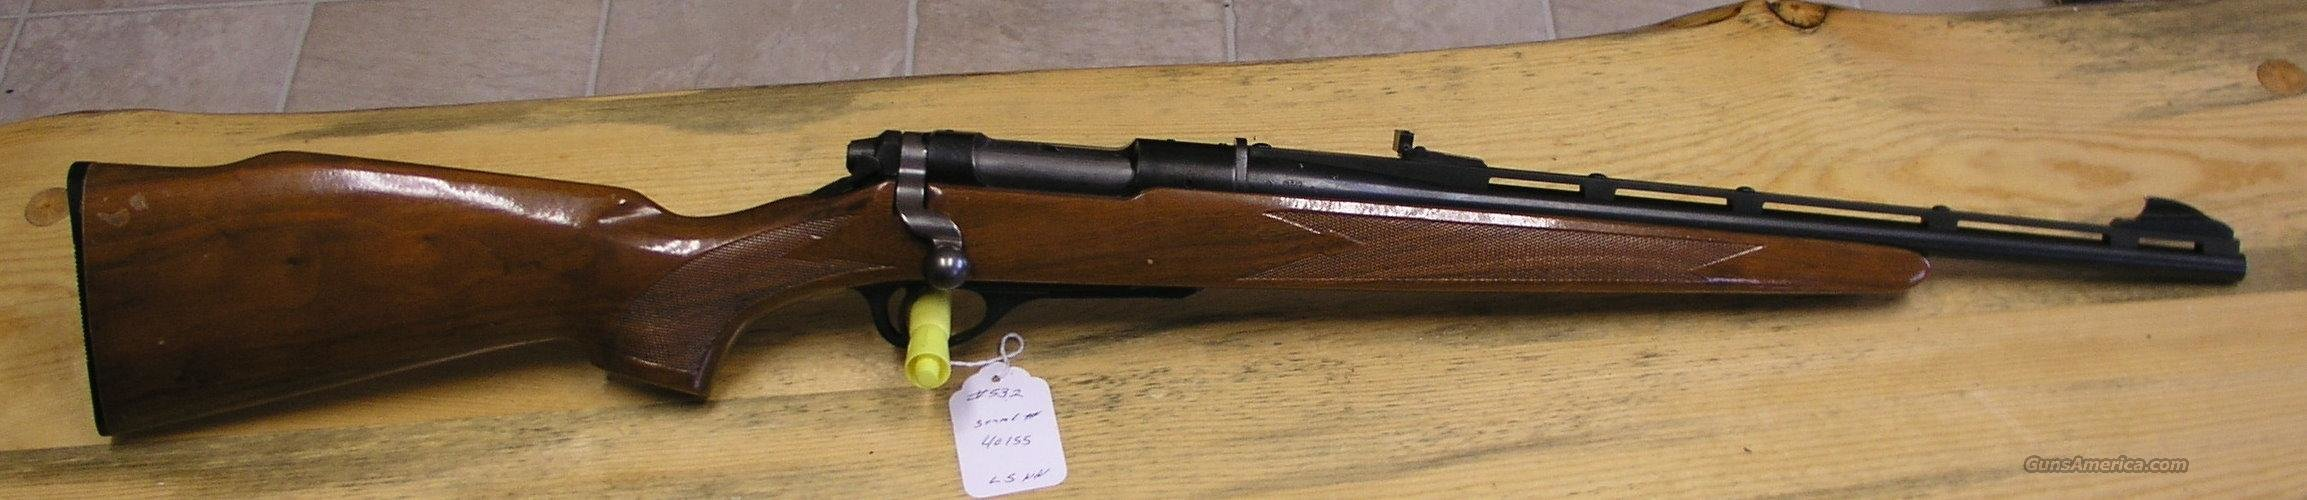 Remington 600 vent rib  223 Rare  Guns > Rifles > Remington Rifles - Modern > Bolt Action Non-Model 700 > Sporting